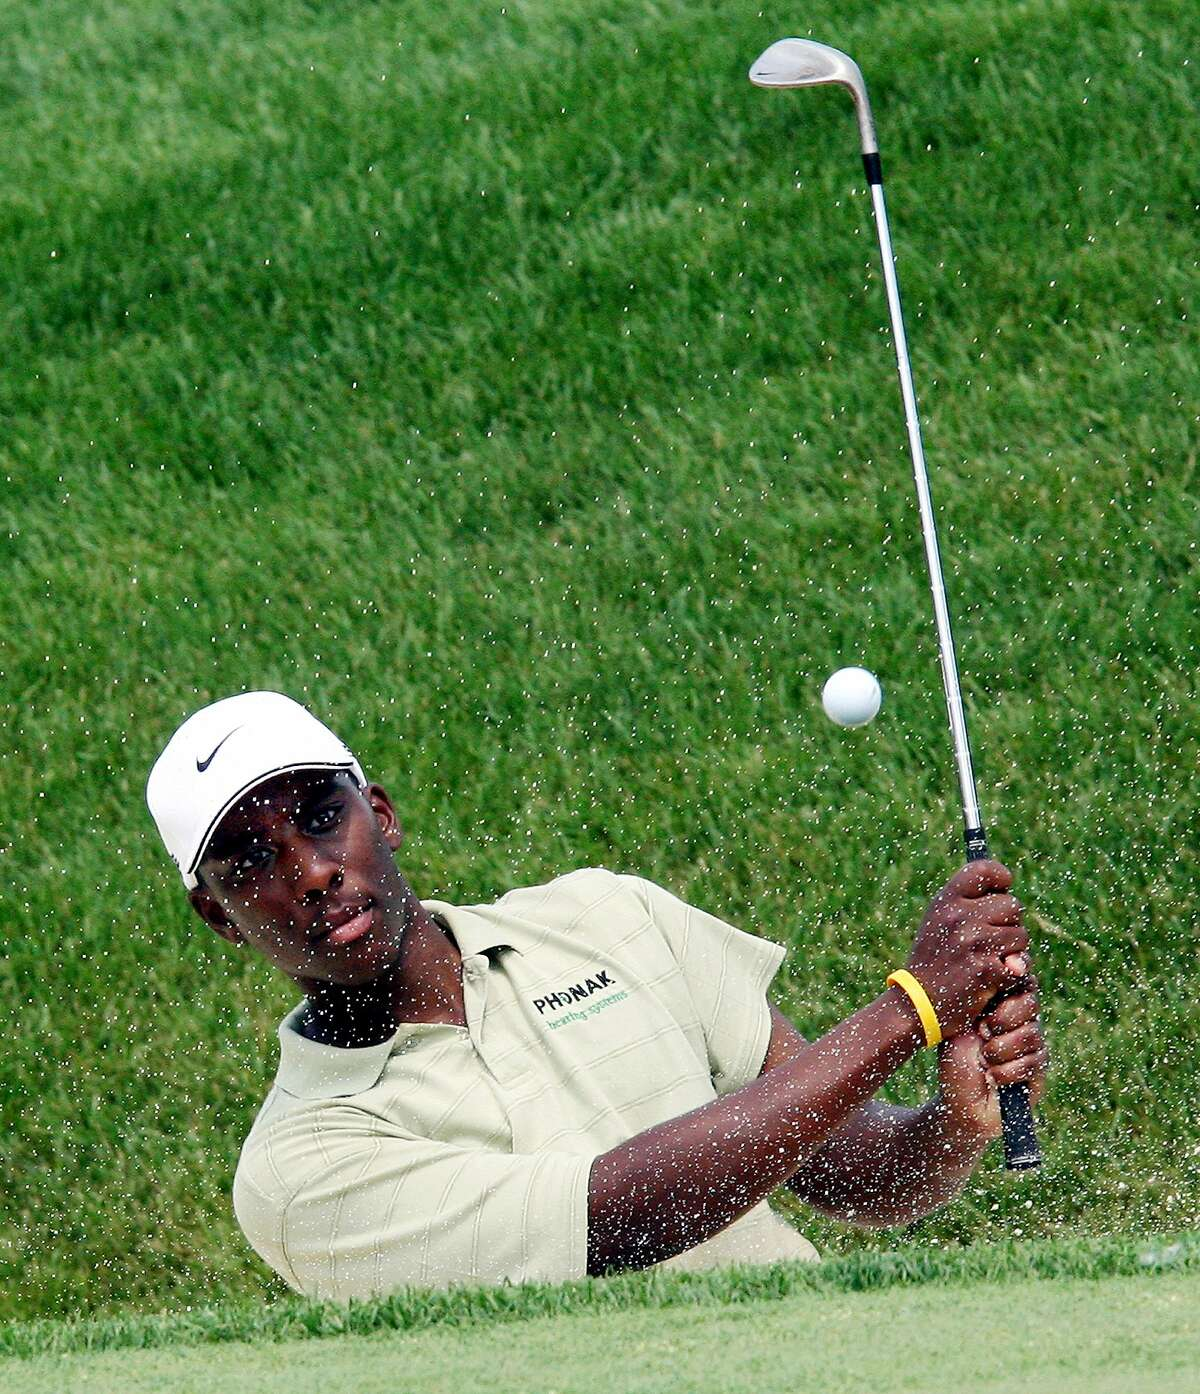 Former Ohio State golfer Kevin Hall hits out of the bunker on the 18th hole during a practice round at the 2006 Memorial golf tournament at the Muirfield Village Golf Club, Tuesday, May 30, 2006, in Dublin, Ohio (AP Photo/Terry Gilliam)